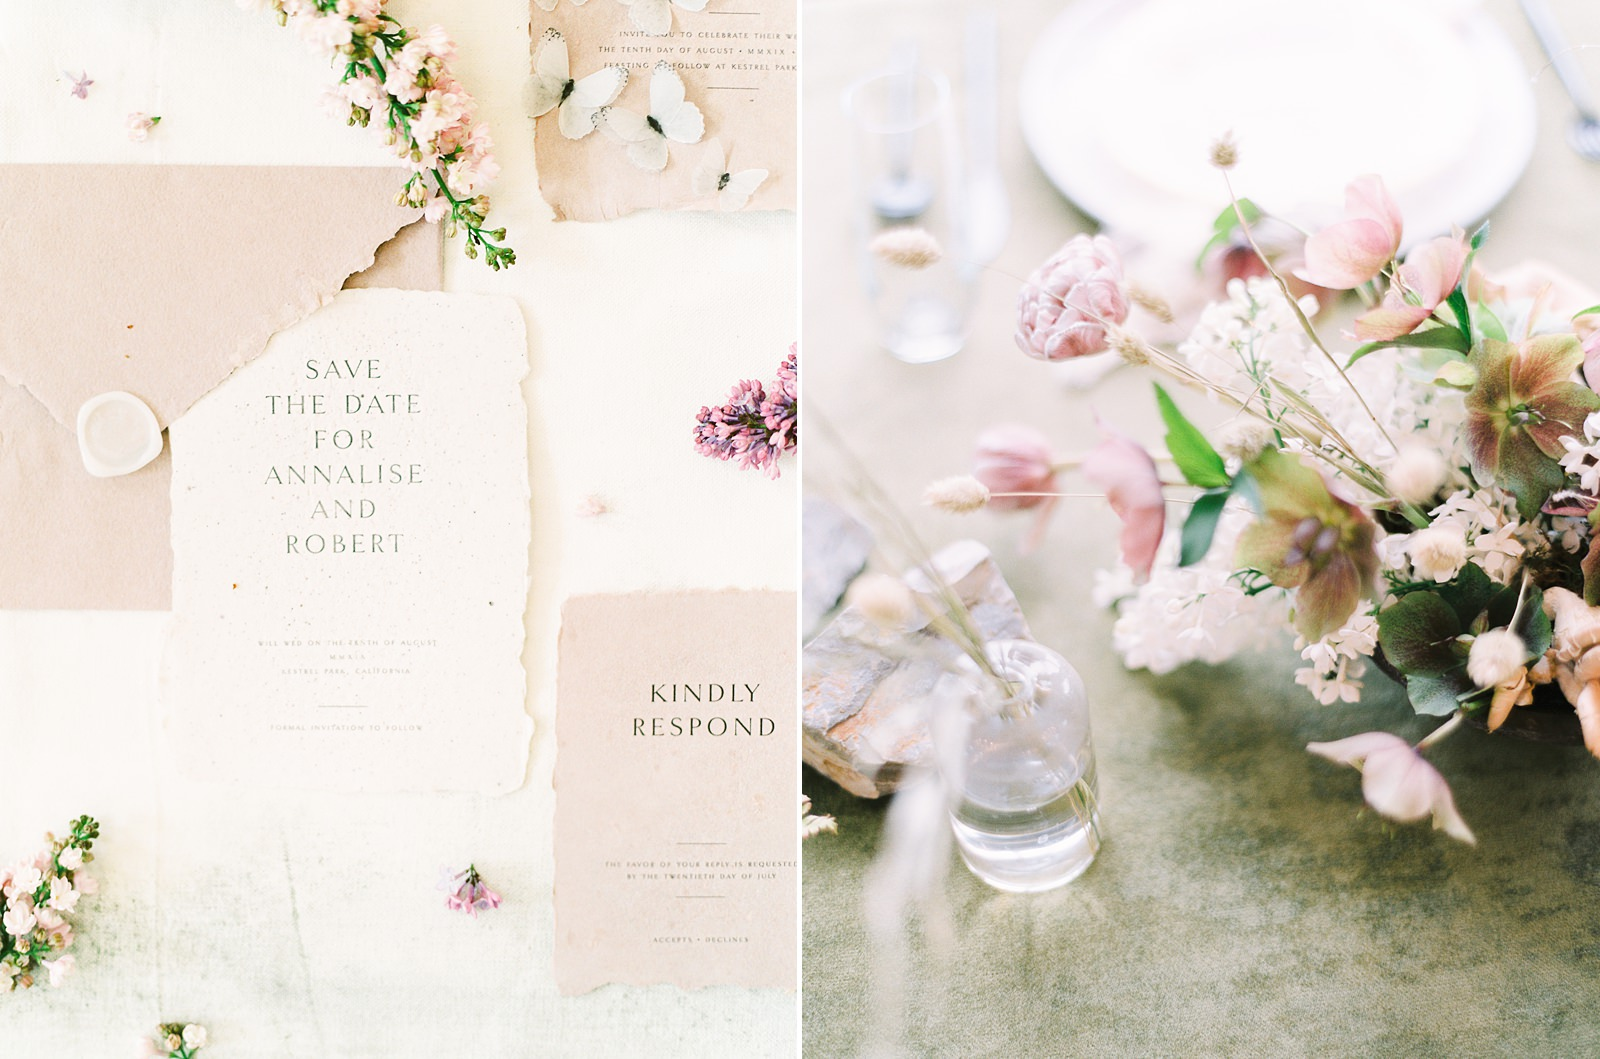 Heber Valley Natural Organic Wedding Inspiration at River Bottoms Ranch, Utah wedding film photography, wedding invitations and flowers details reception decor